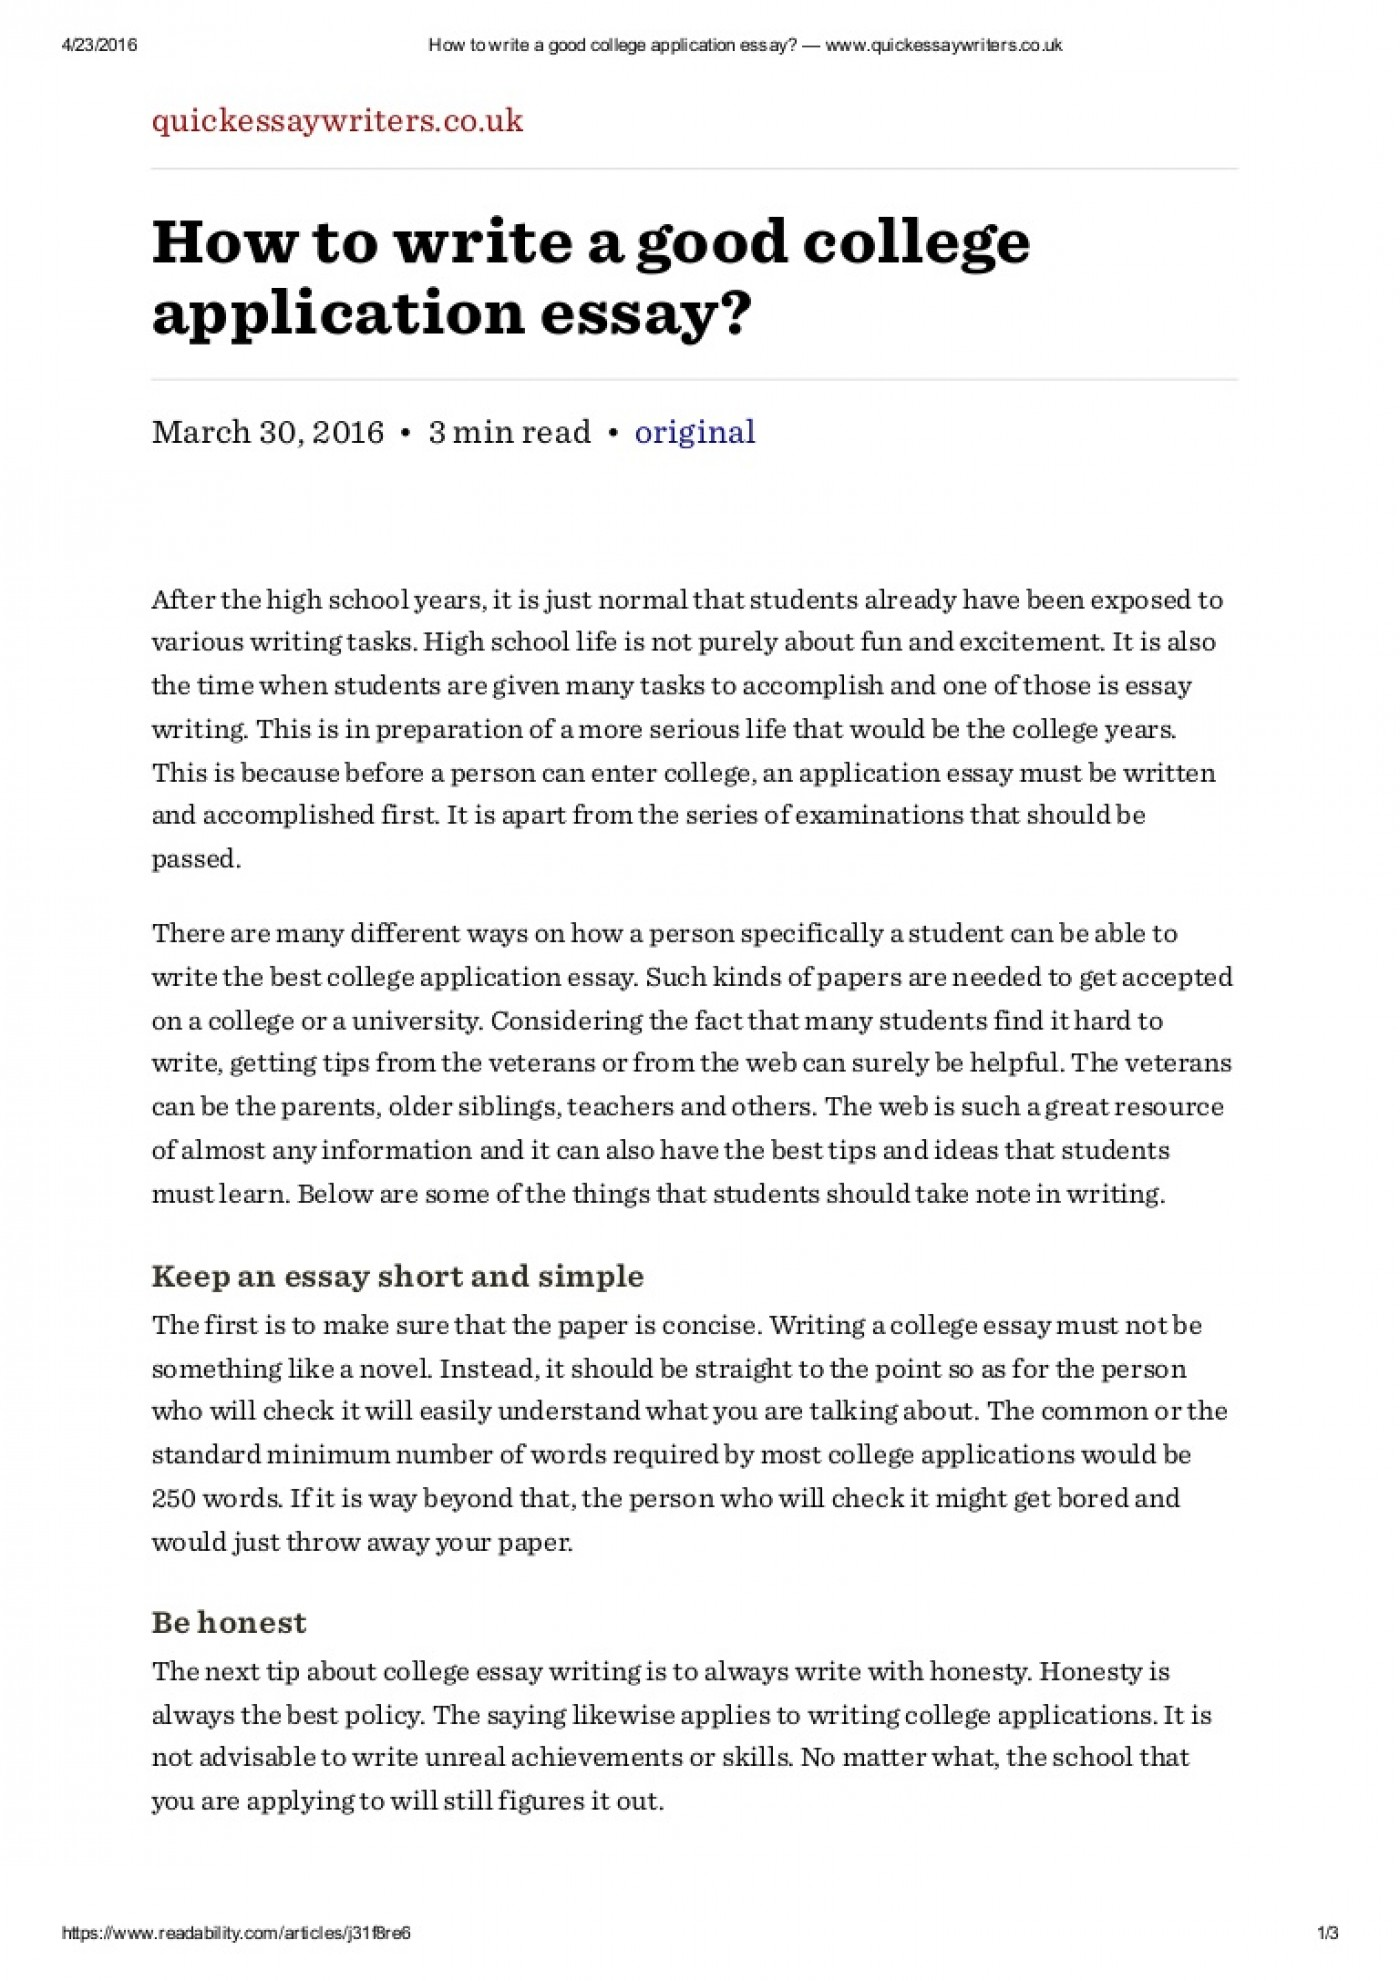 009 Howtowriteagoodcollegeapplicationessaywww Thumbnail Essay Example Writing College Rare A Application Tips For Great How To Write That Stands Out Of 1400